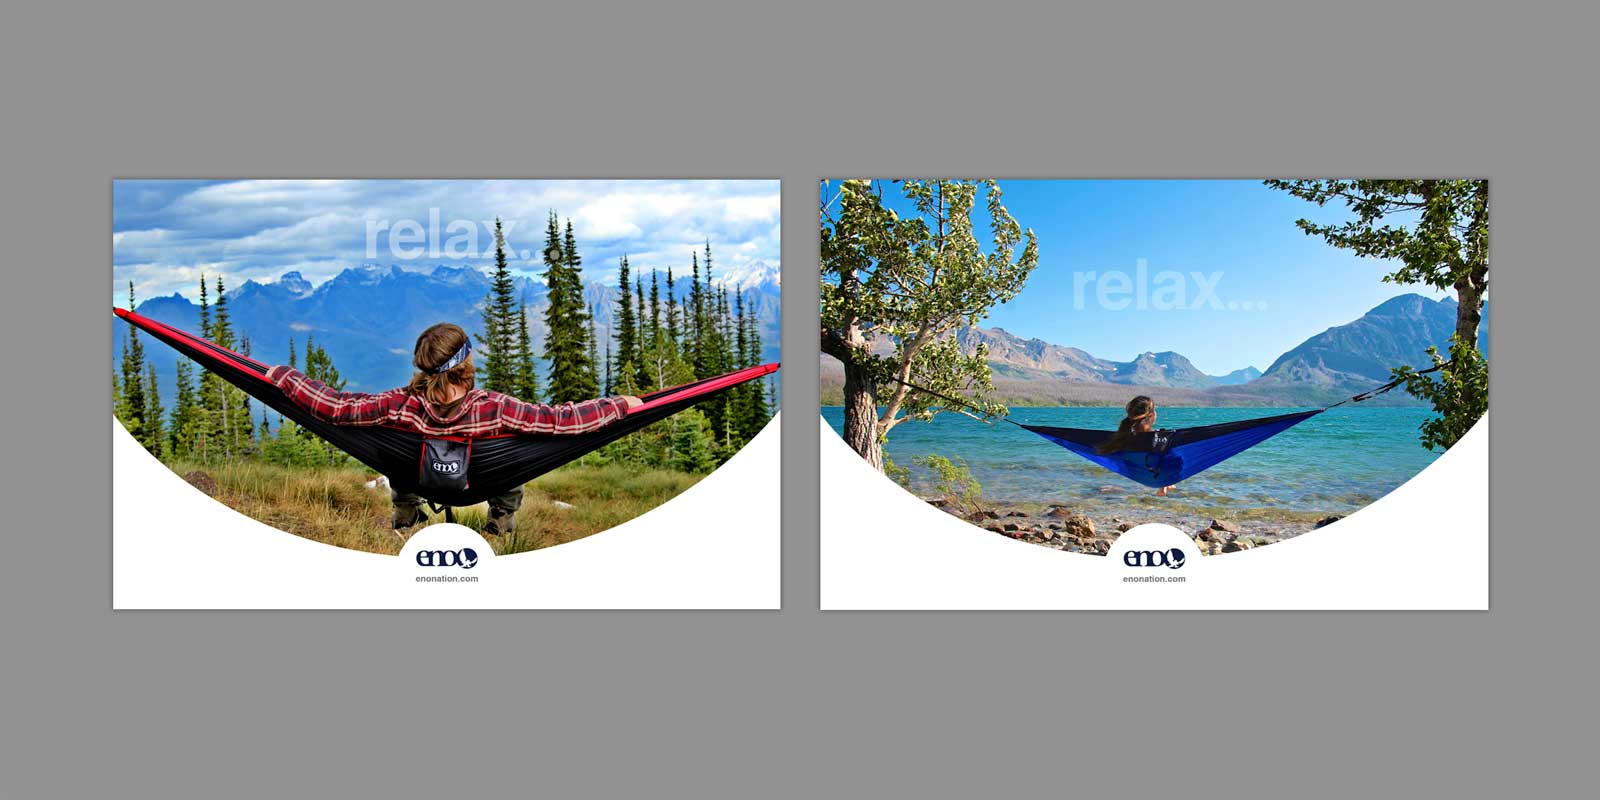 Make hiker relaxes in ENO Hammock, viewing Glacier National Park, Montana. Female hiker relaxes in hammock viewing clear lake and mountains.